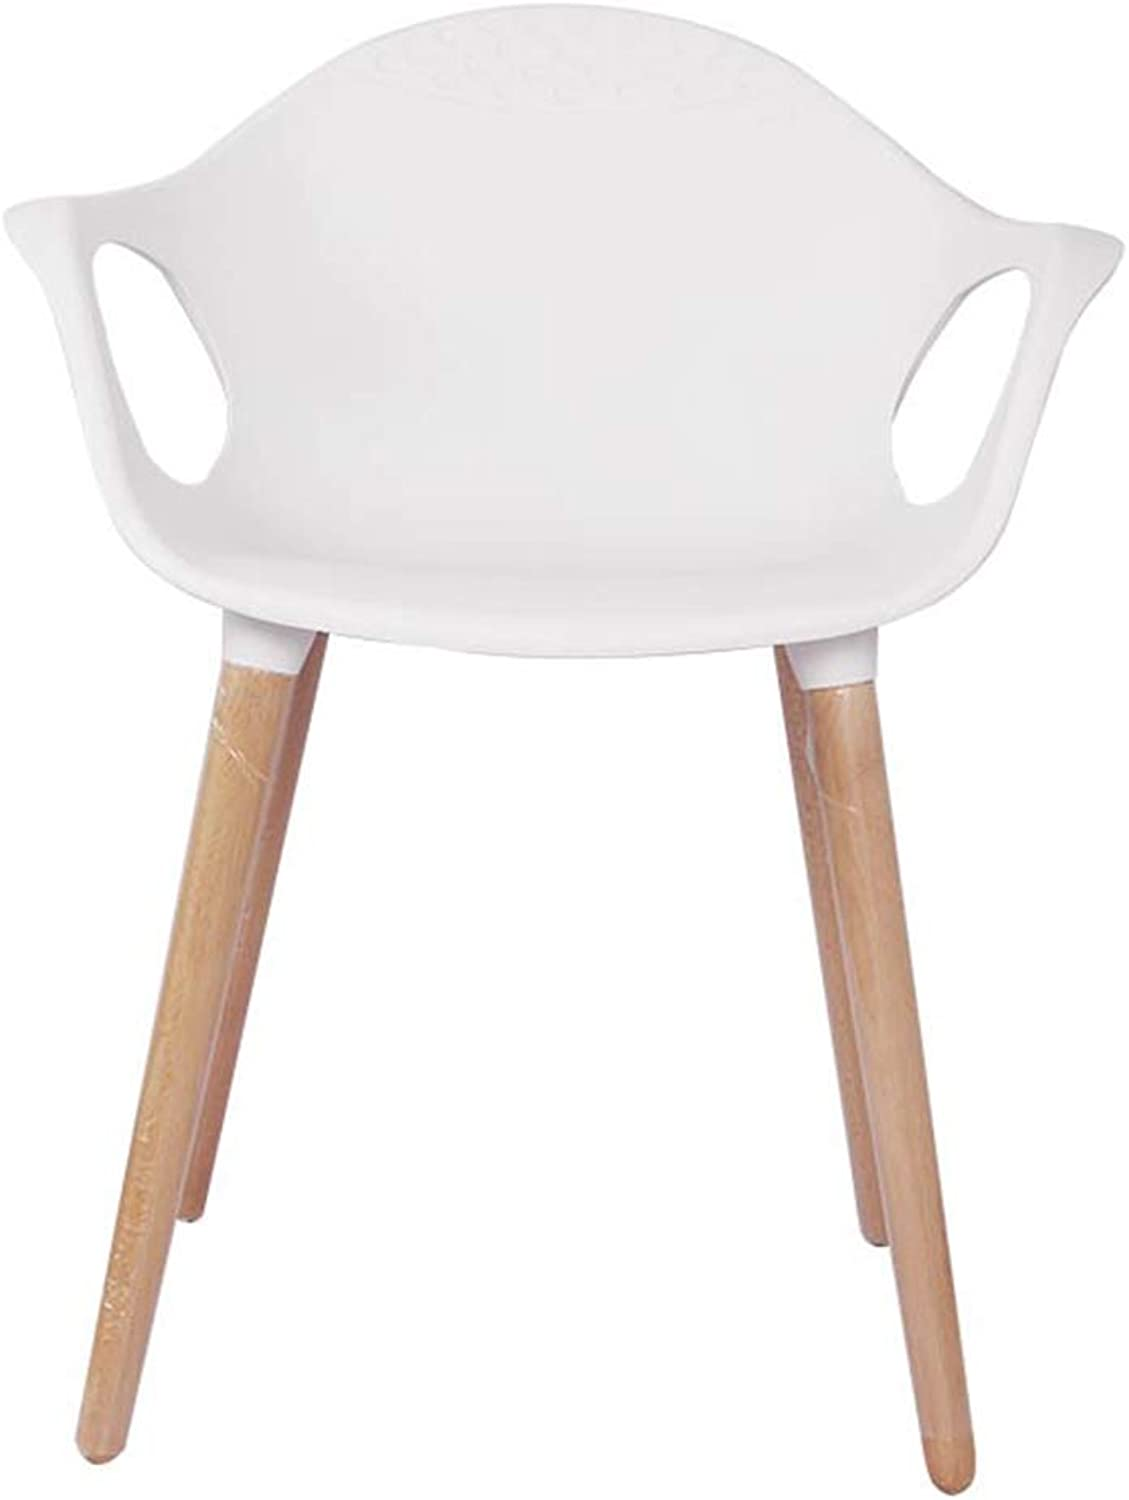 LYXPUZI Modern Leisure Simple Chair Casual Solid Wood Dining Chair (color   White)